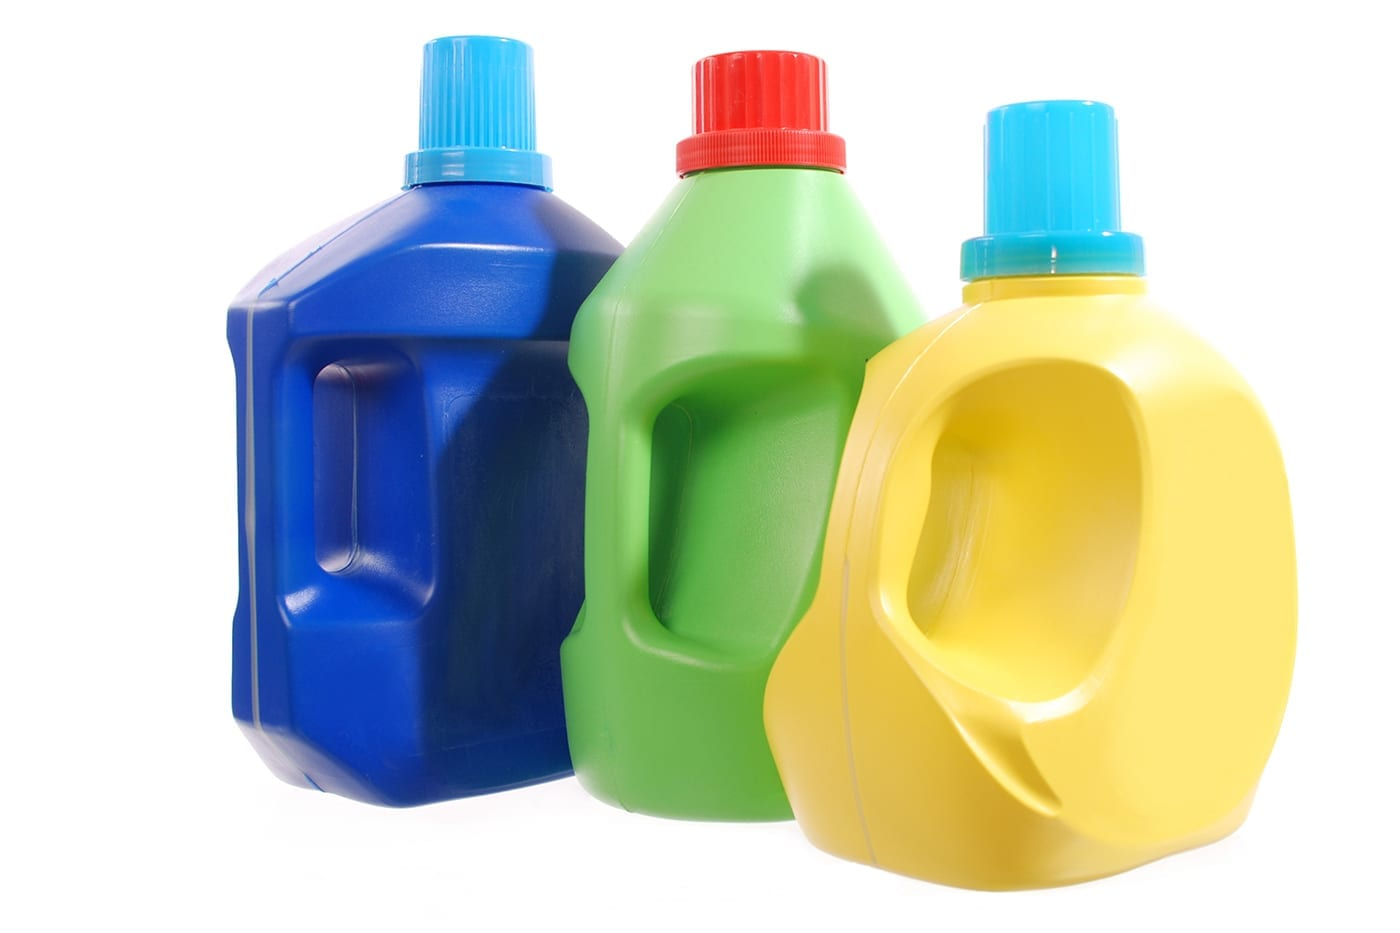 7 Fun Uses for Empty Laundry Detergent Bottles